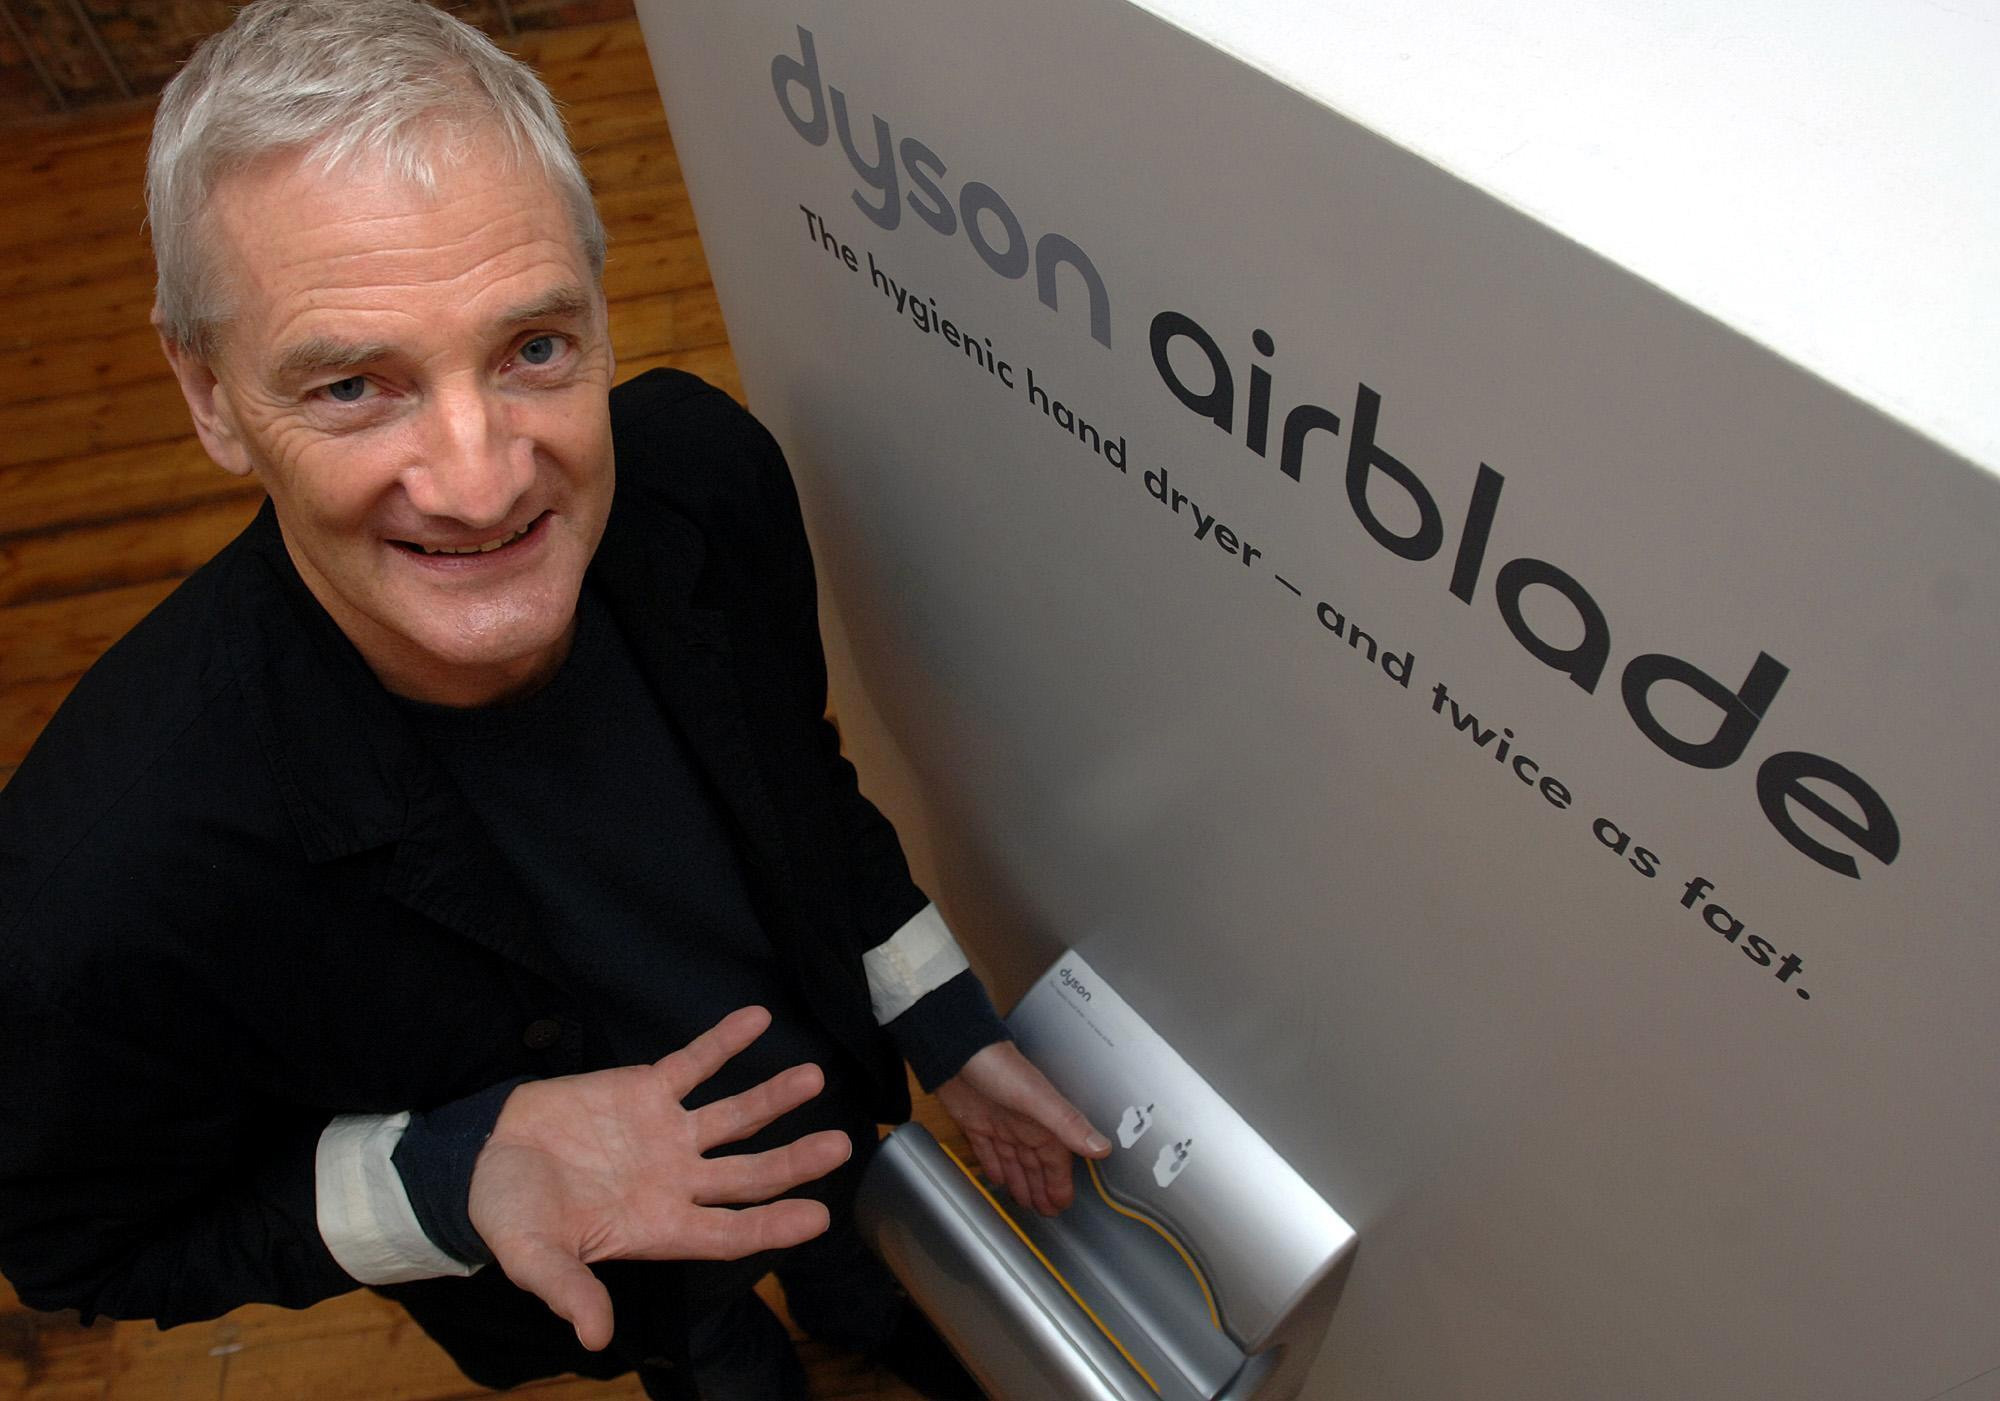 Vacuum cleaner king James Dyson with his new invention the Airblade, a high-speed hand dryer for public toilets, during an unveiling in London.